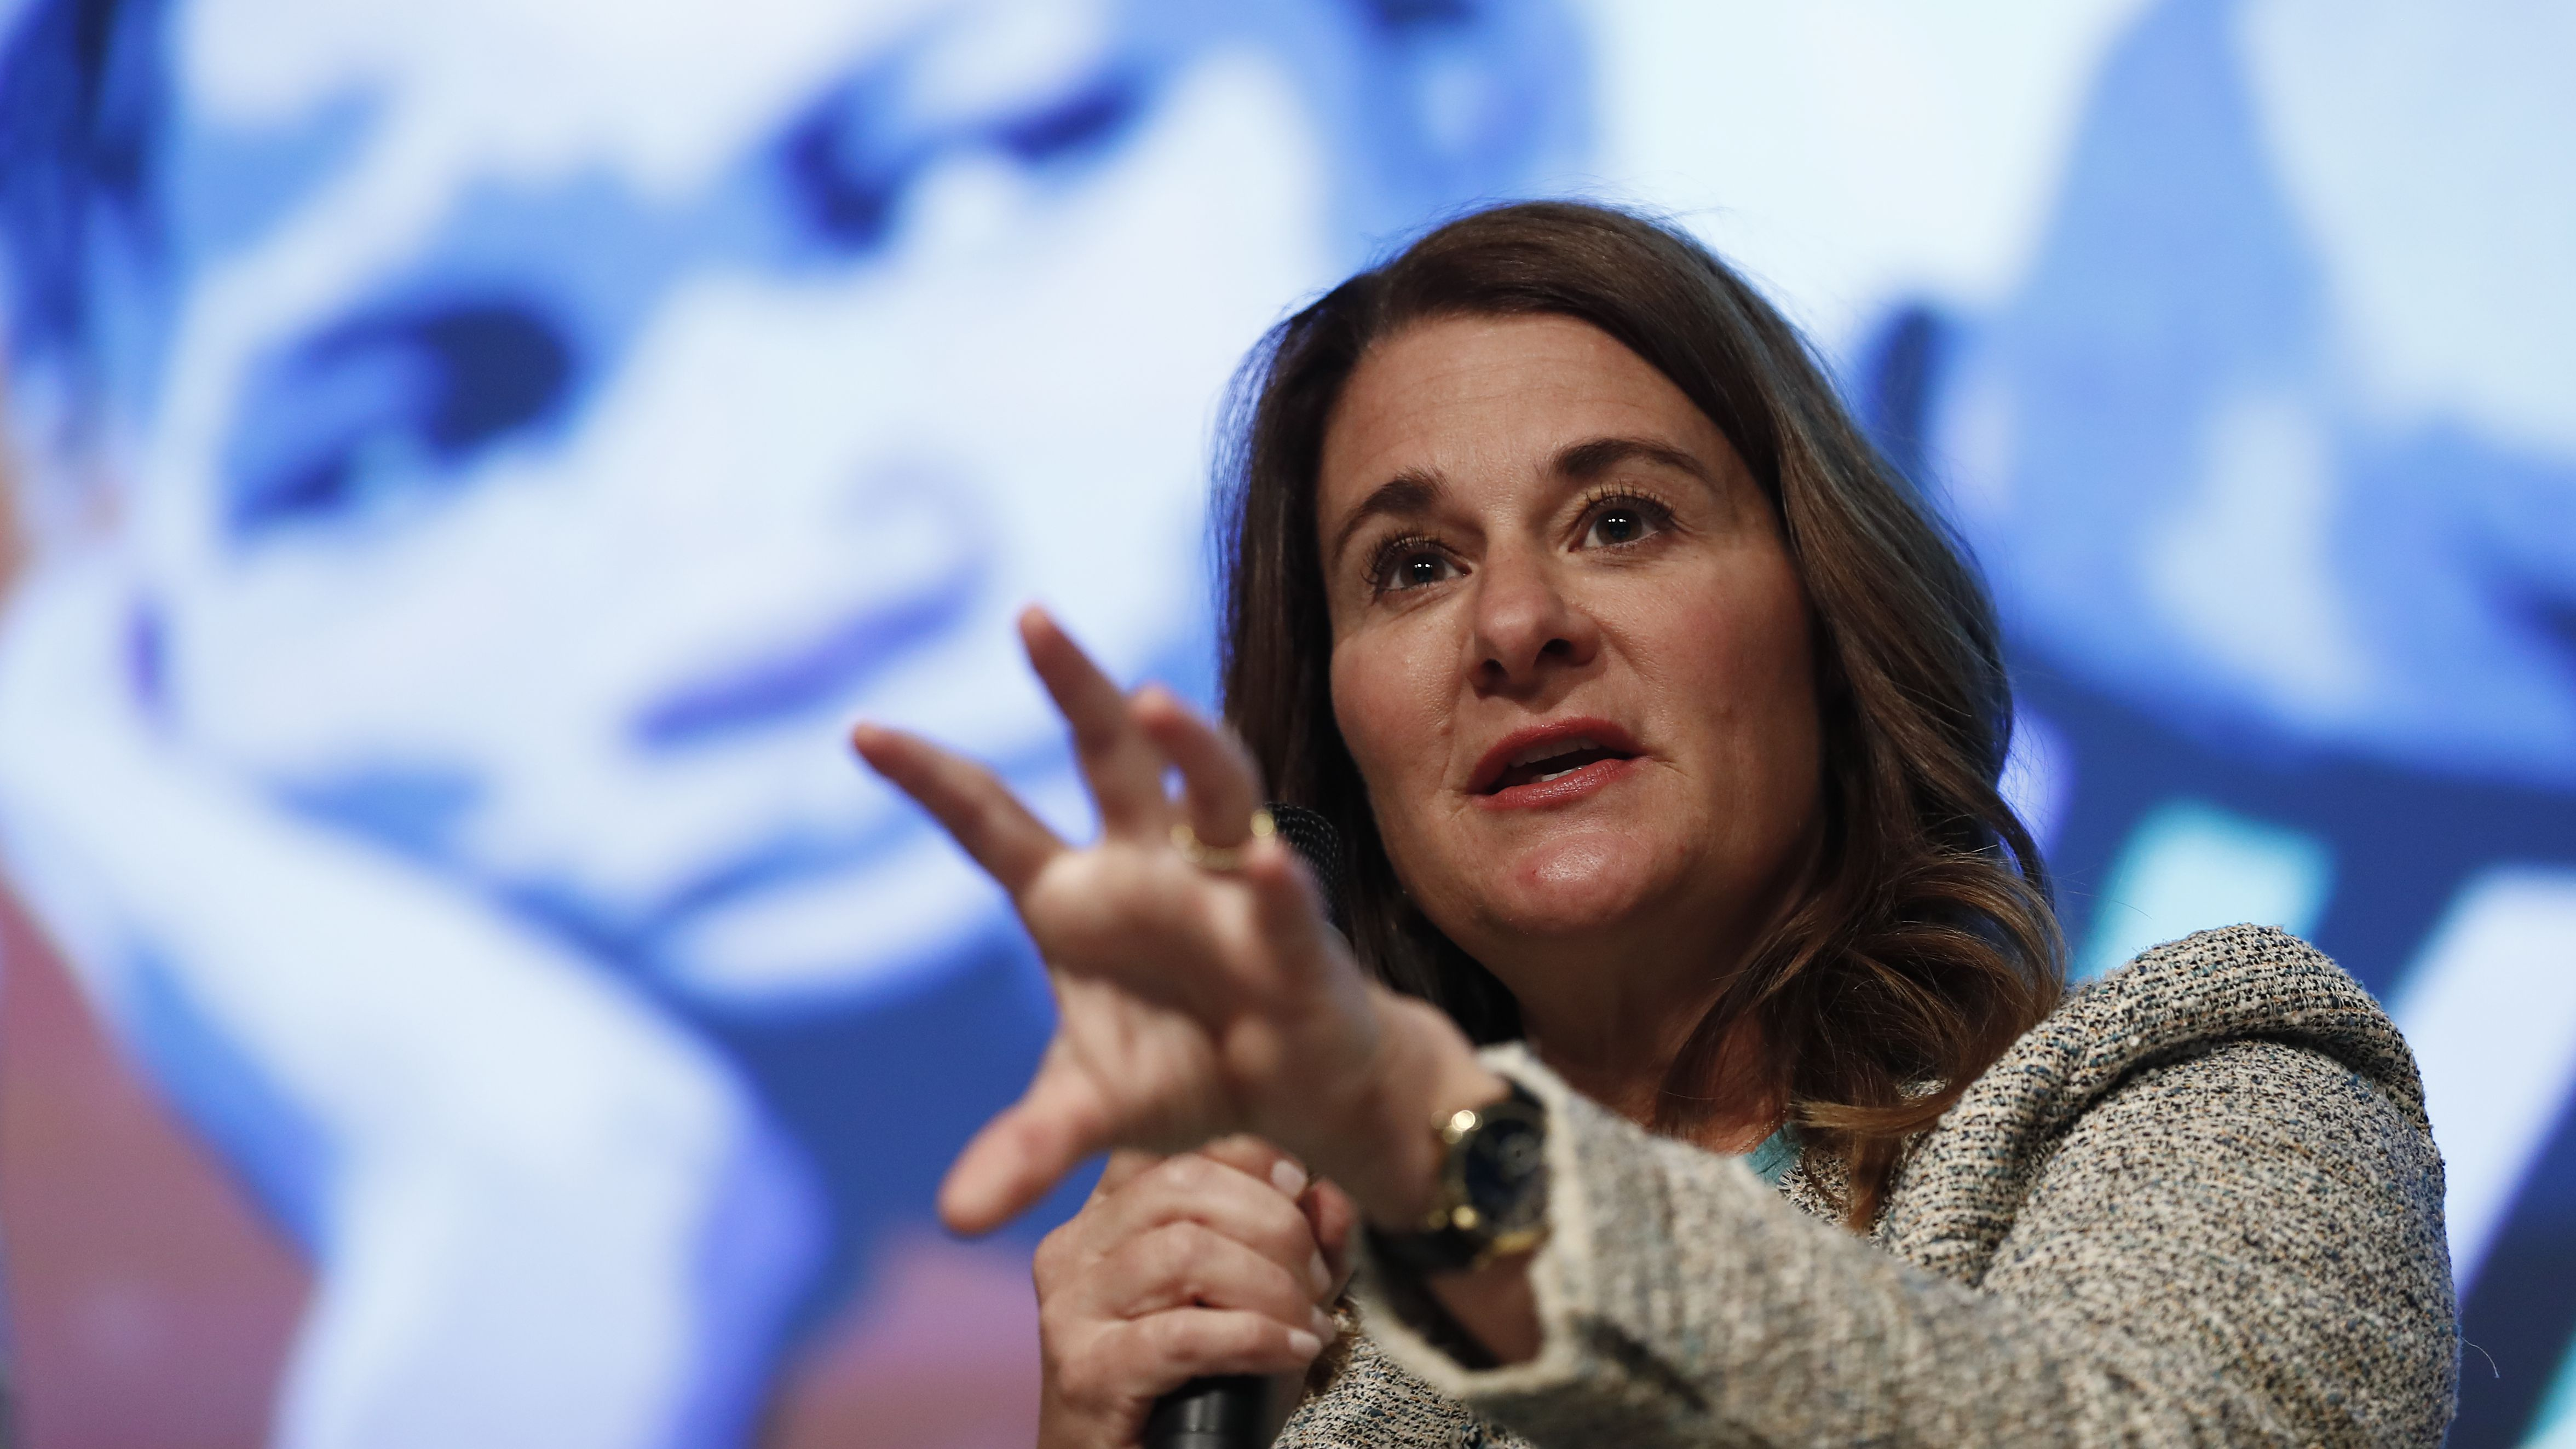 "Melinda Gates speaks during the ""Generation Now Investing in Adolescents Today to Shape the Works of Tomorrow"" panel at the 2017 World Bank Group Spring Meetings in Washington, Thursday, April 20, 2017. The leaders of the International Monetary Fund and the World Bank begin their spring meetings with the mission of strengthening a gradually improving global economy while facing resistance to free trade and political unrest in some countries. (AP Photo/Carolyn Kaster)"